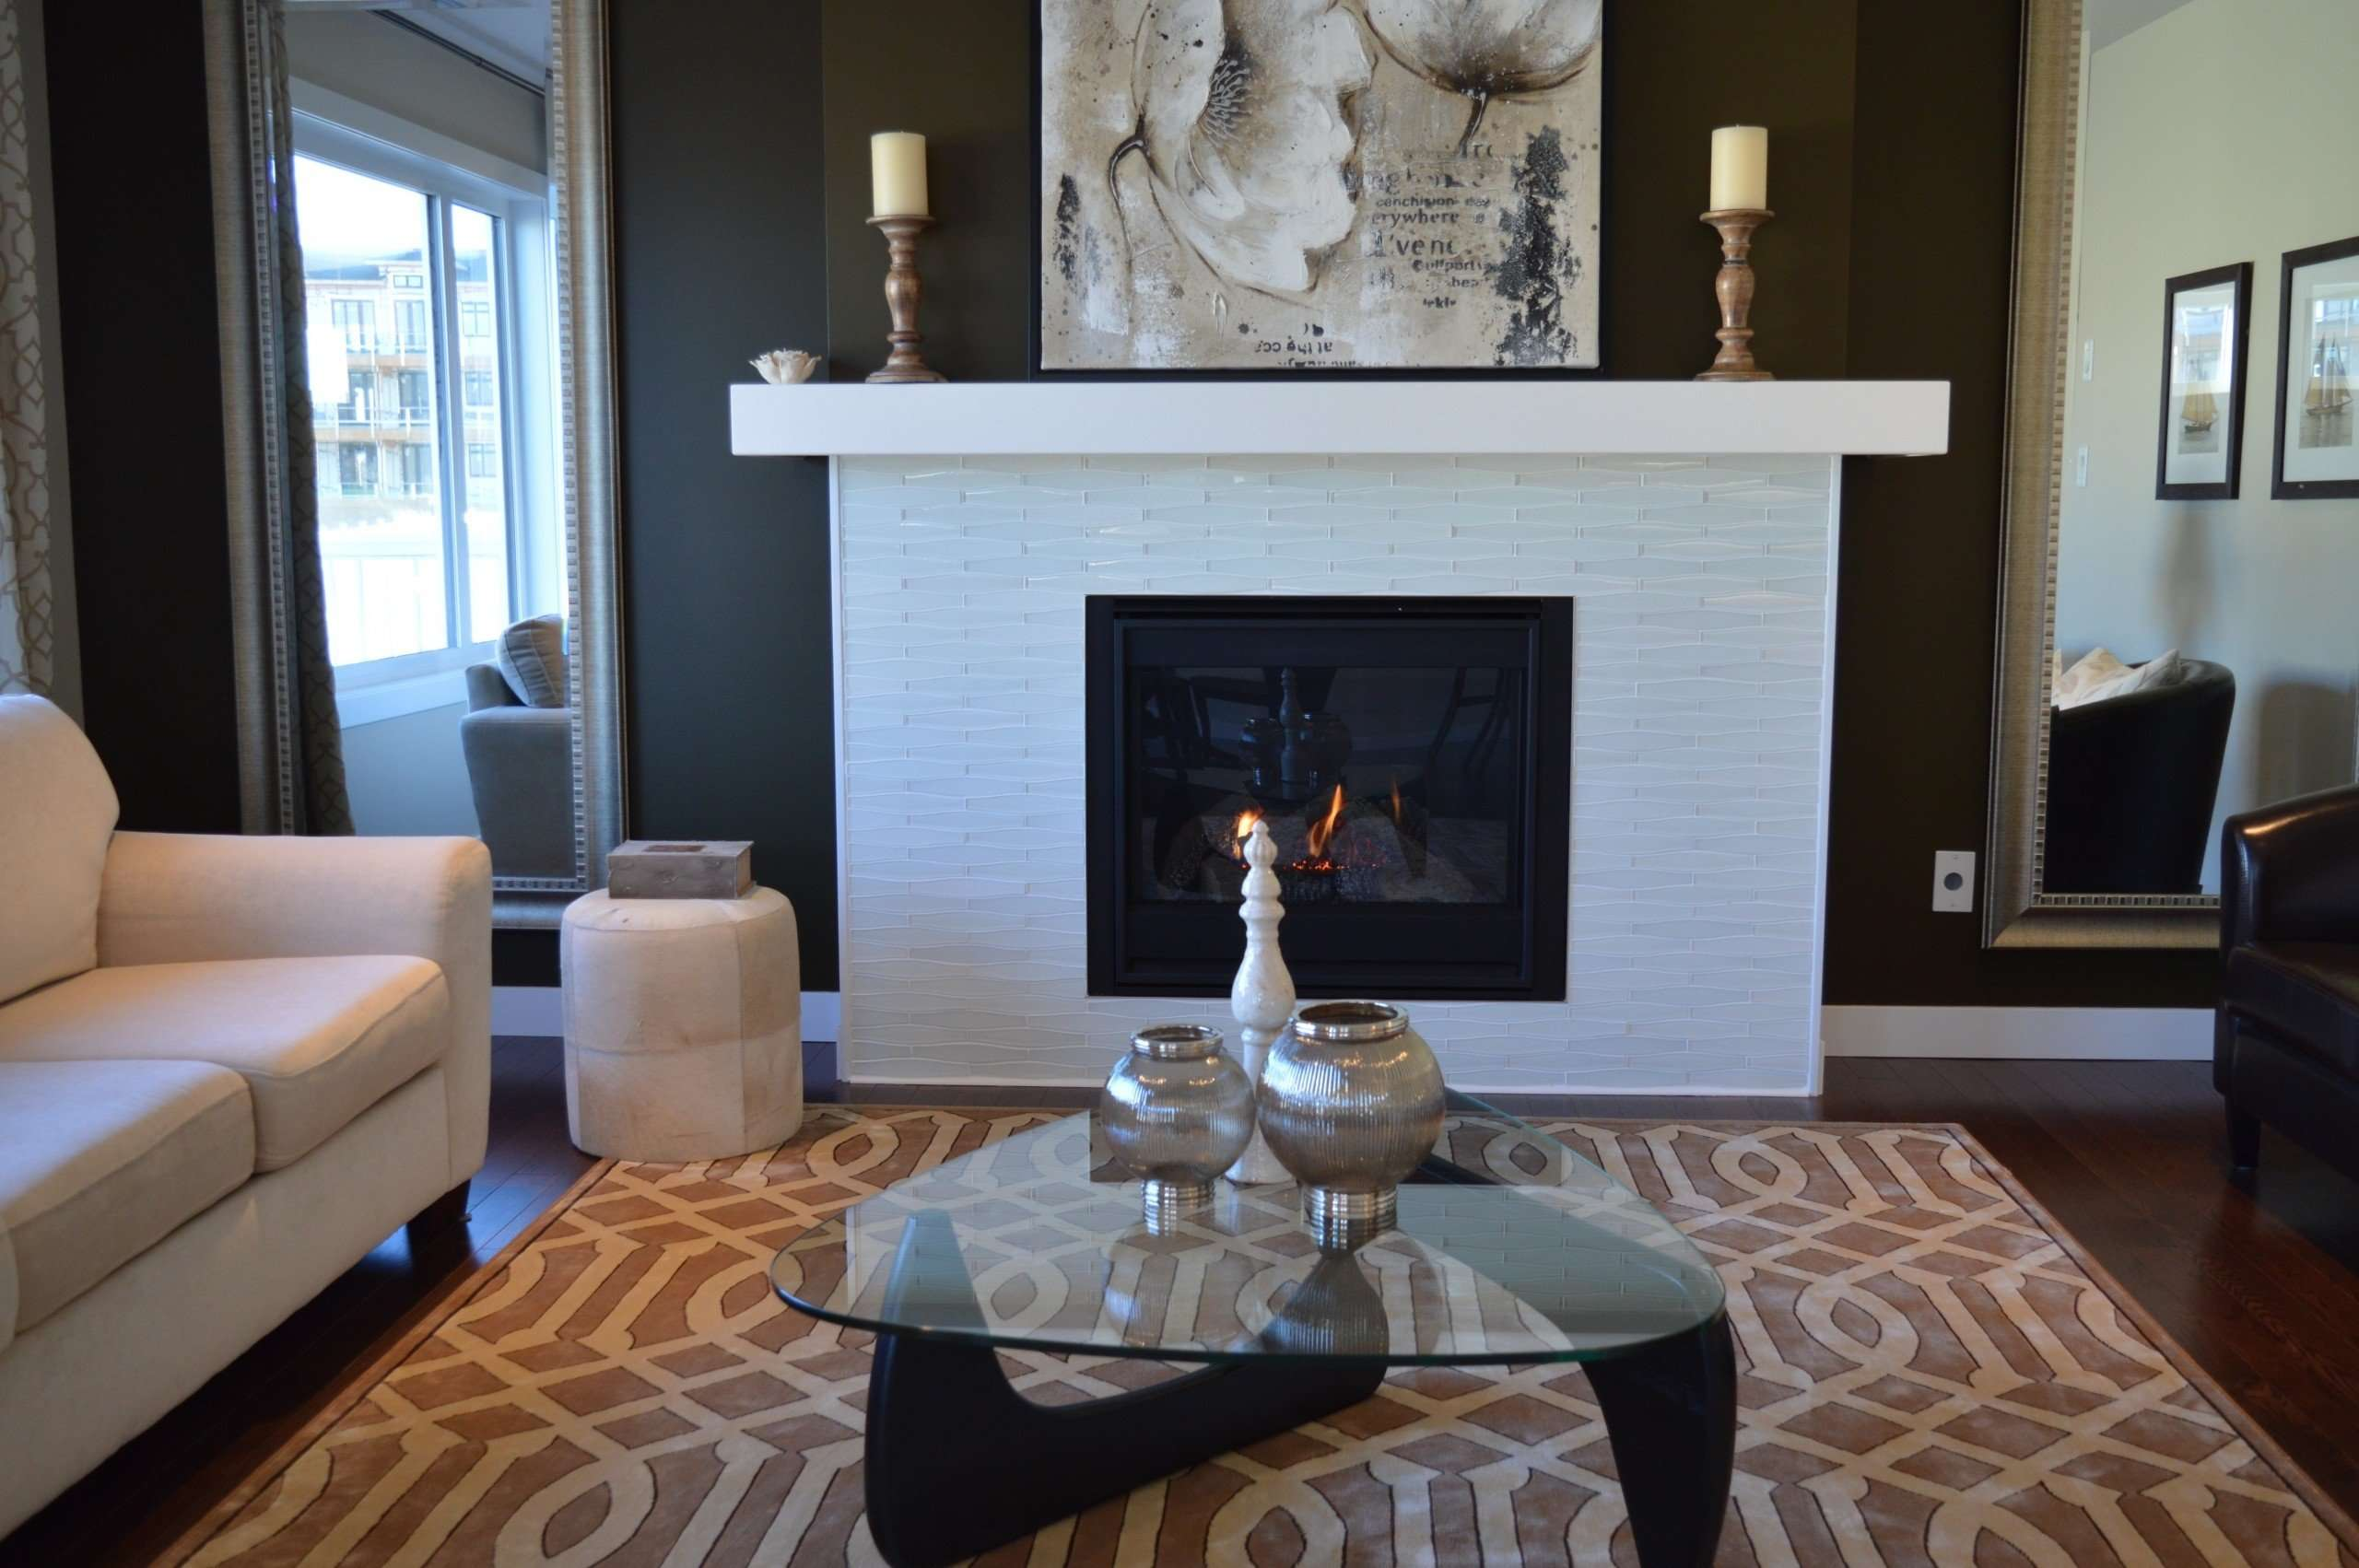 Fireplace | Mantle | Mantel | Decorating | Styling | Interiors